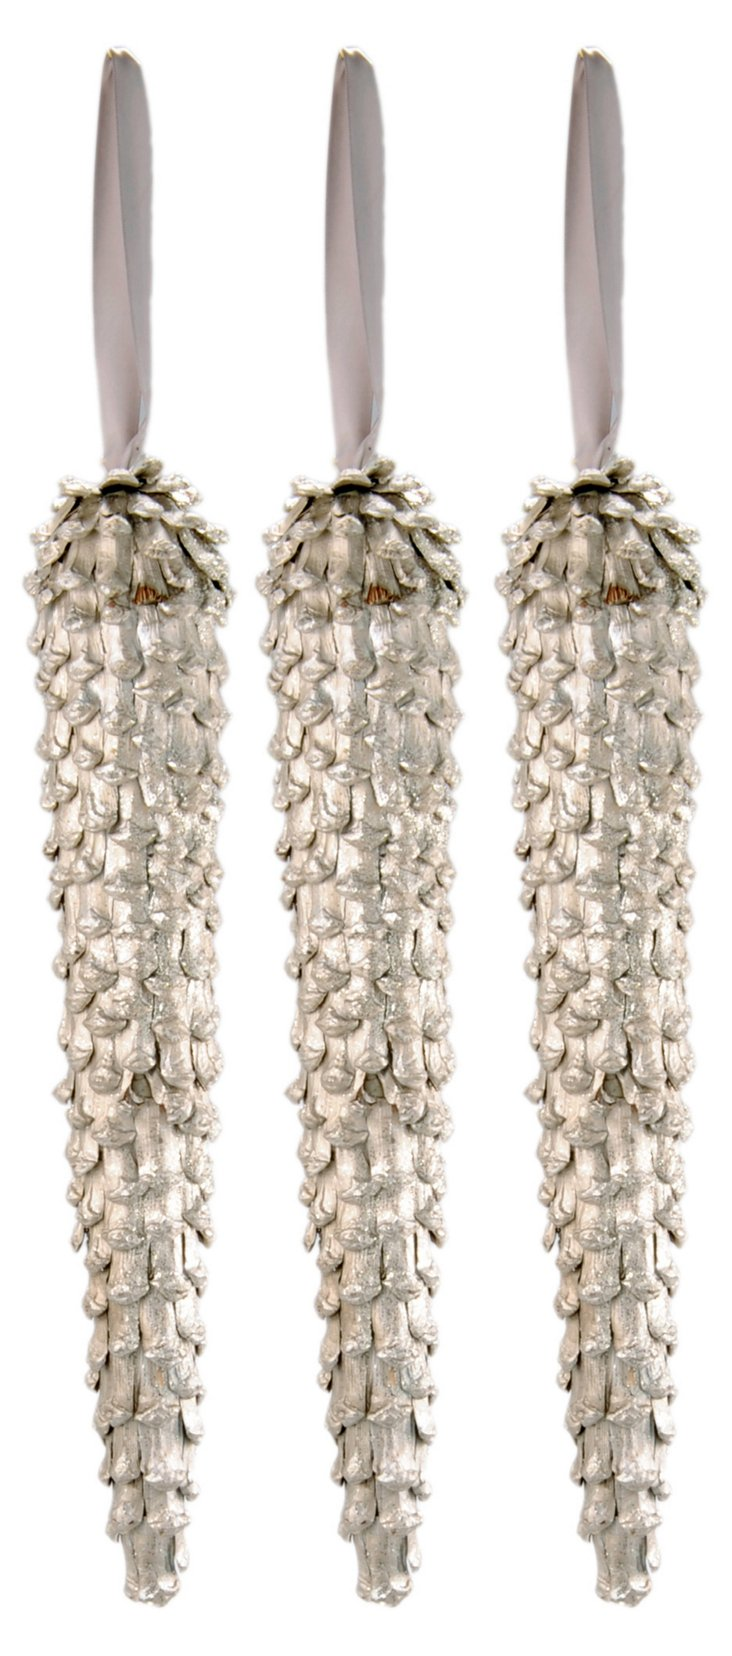 S/3 Thin Silver Icicle Ornaments, Large